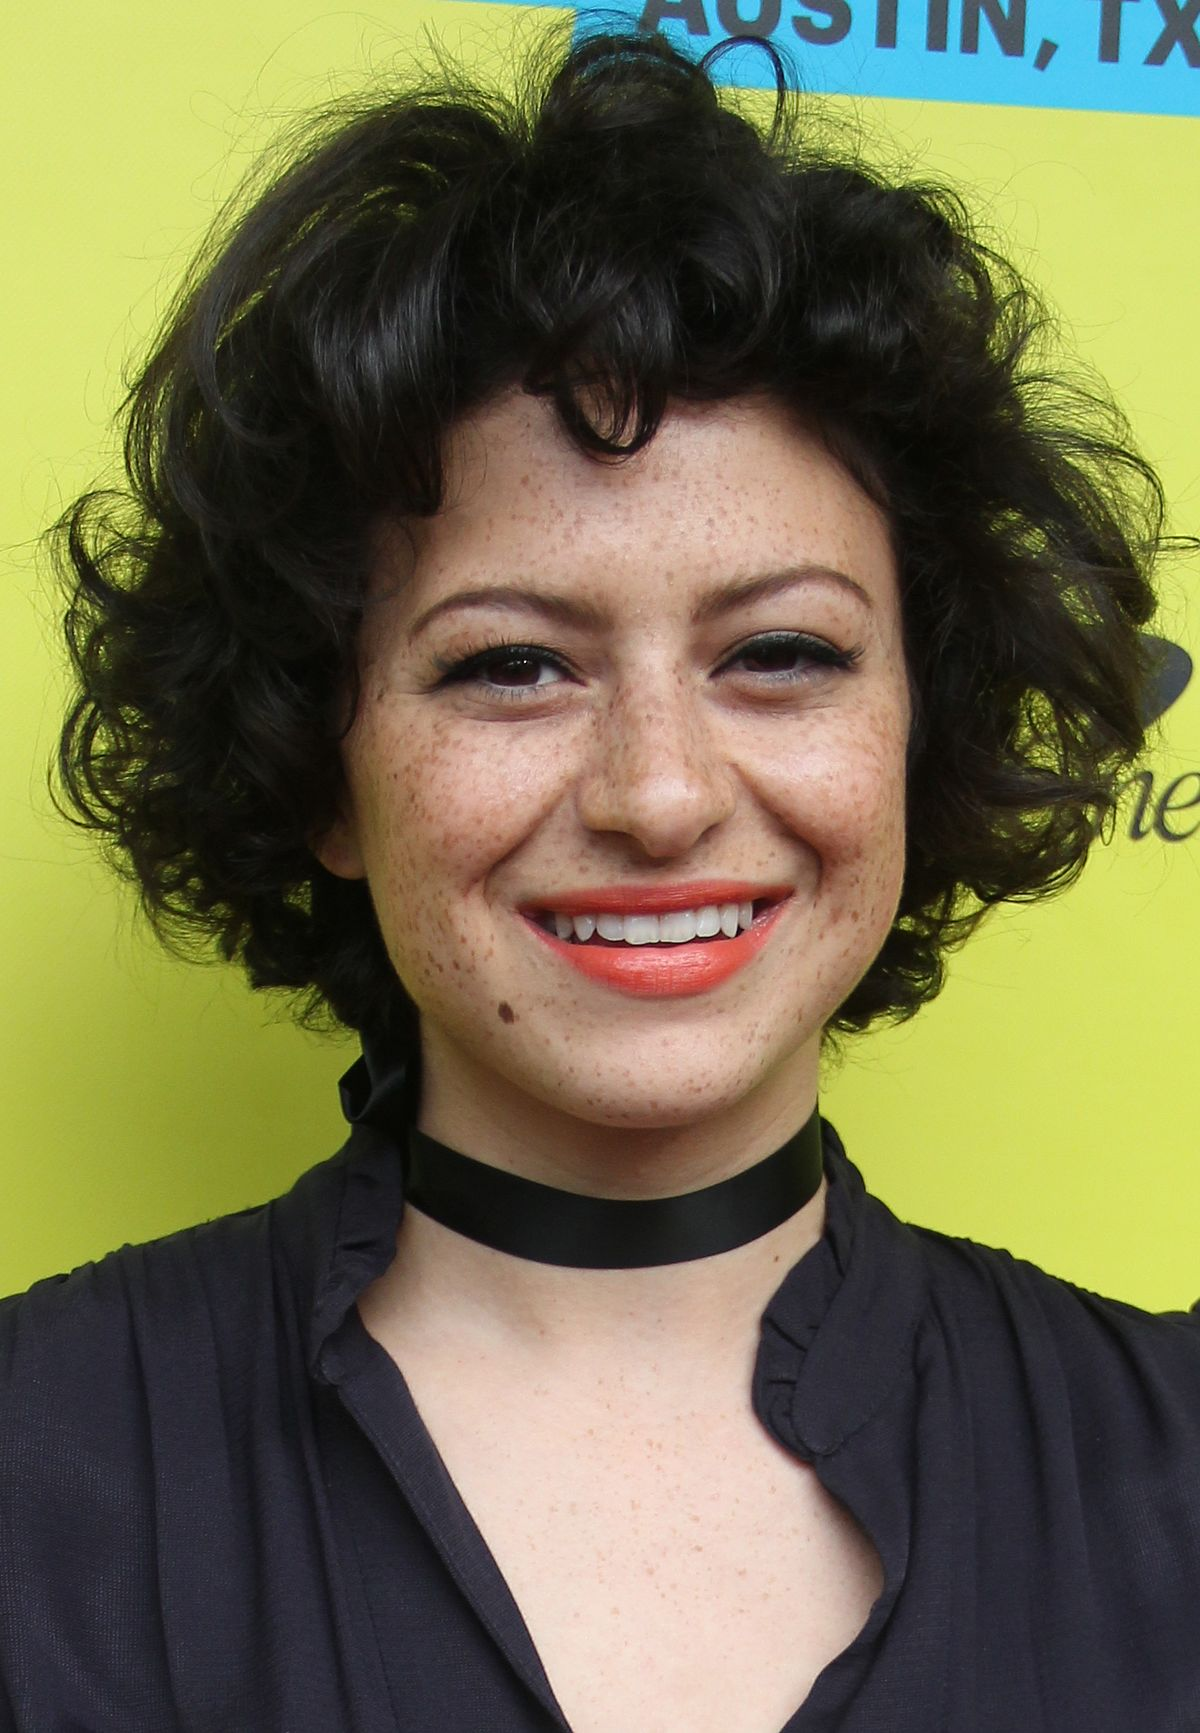 Young Alia Shawkat nudes (61 images), Is a cute